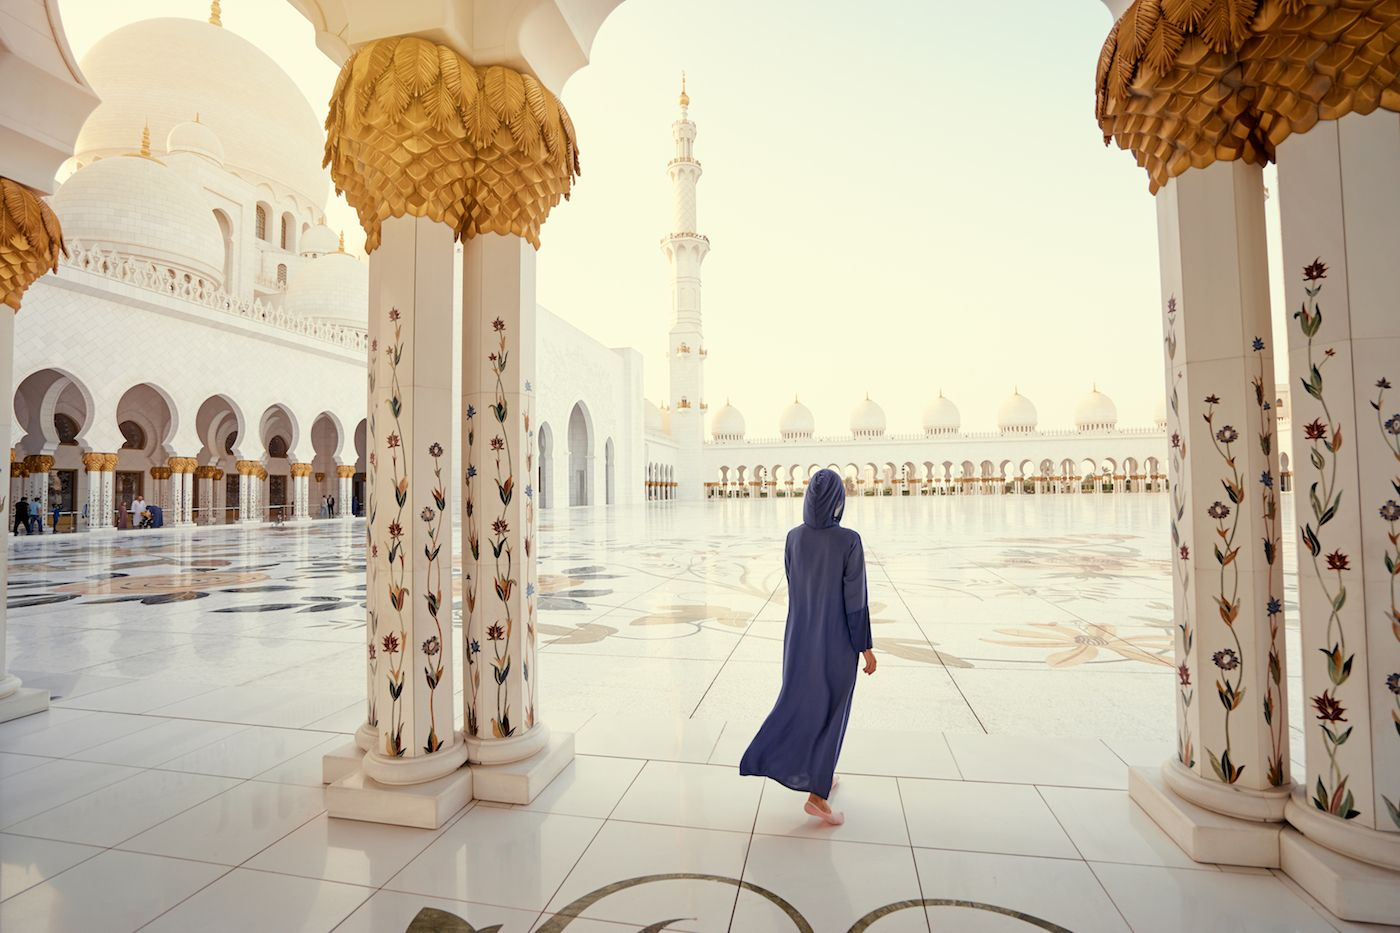 Do Muslim Women Need to Prove Their Equality by Leading Men in Prayer?